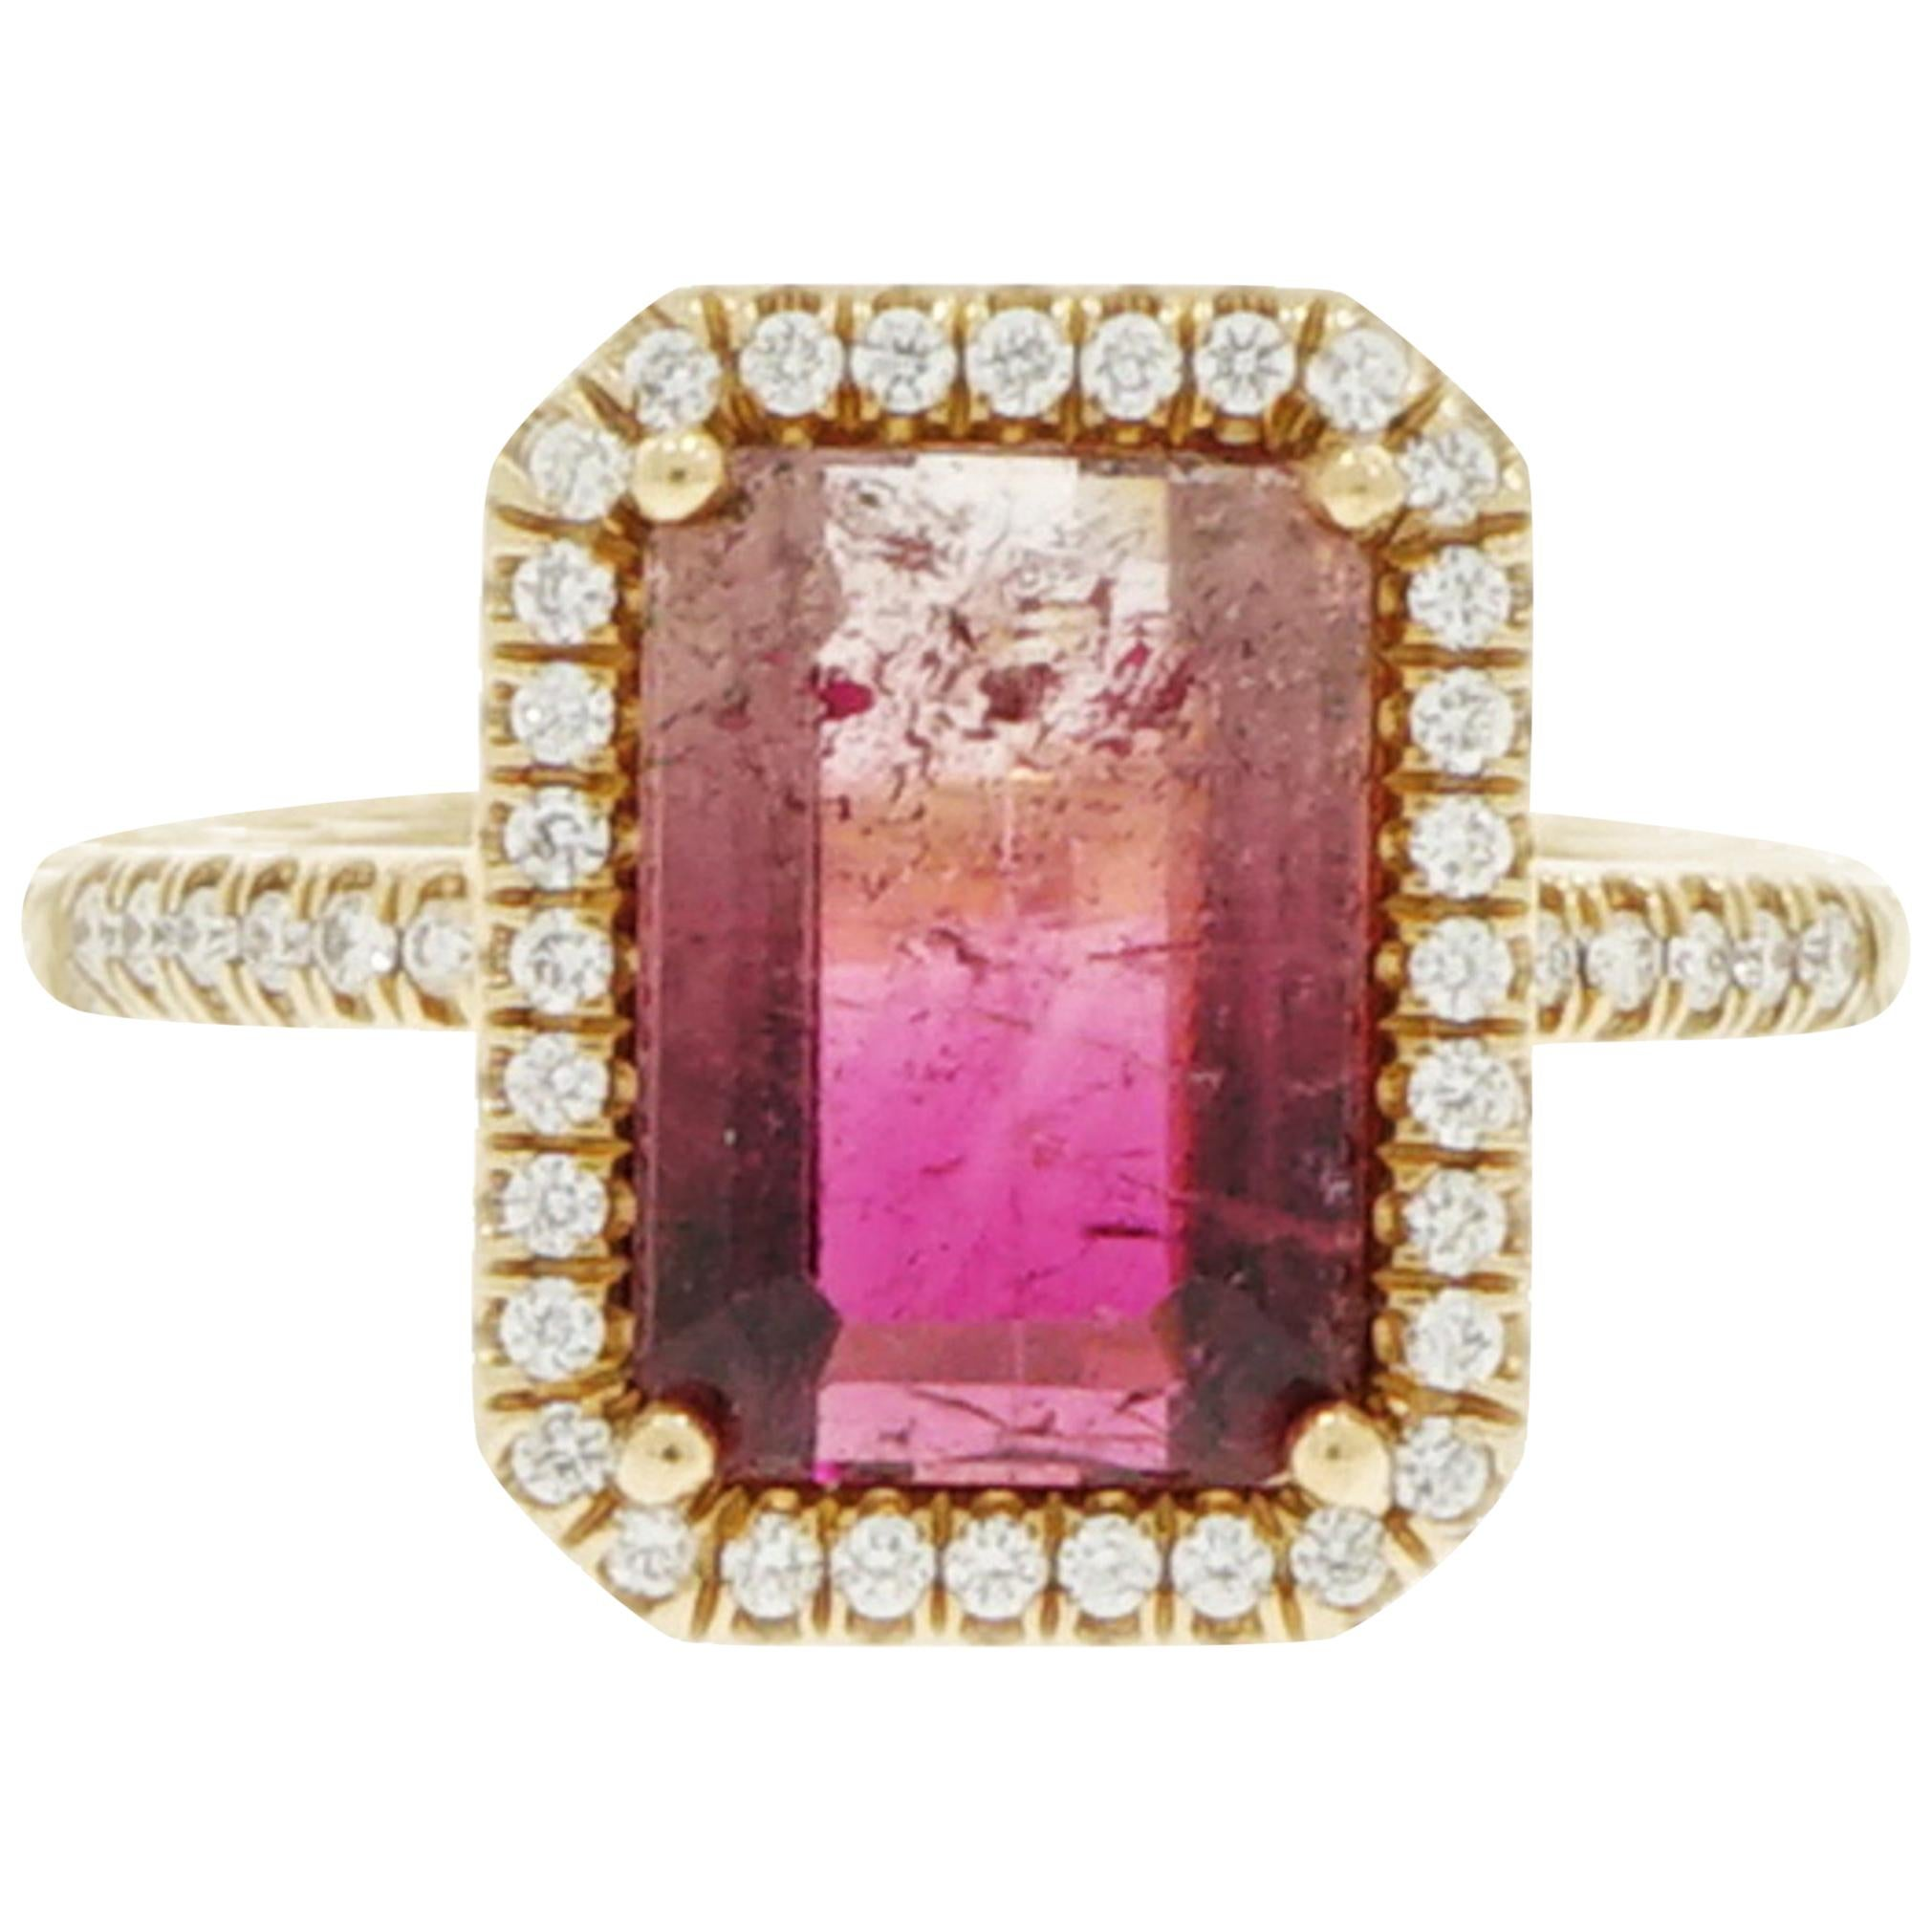 Leslie Greene Diamond and Gold Ring For Sale at 1stdibs